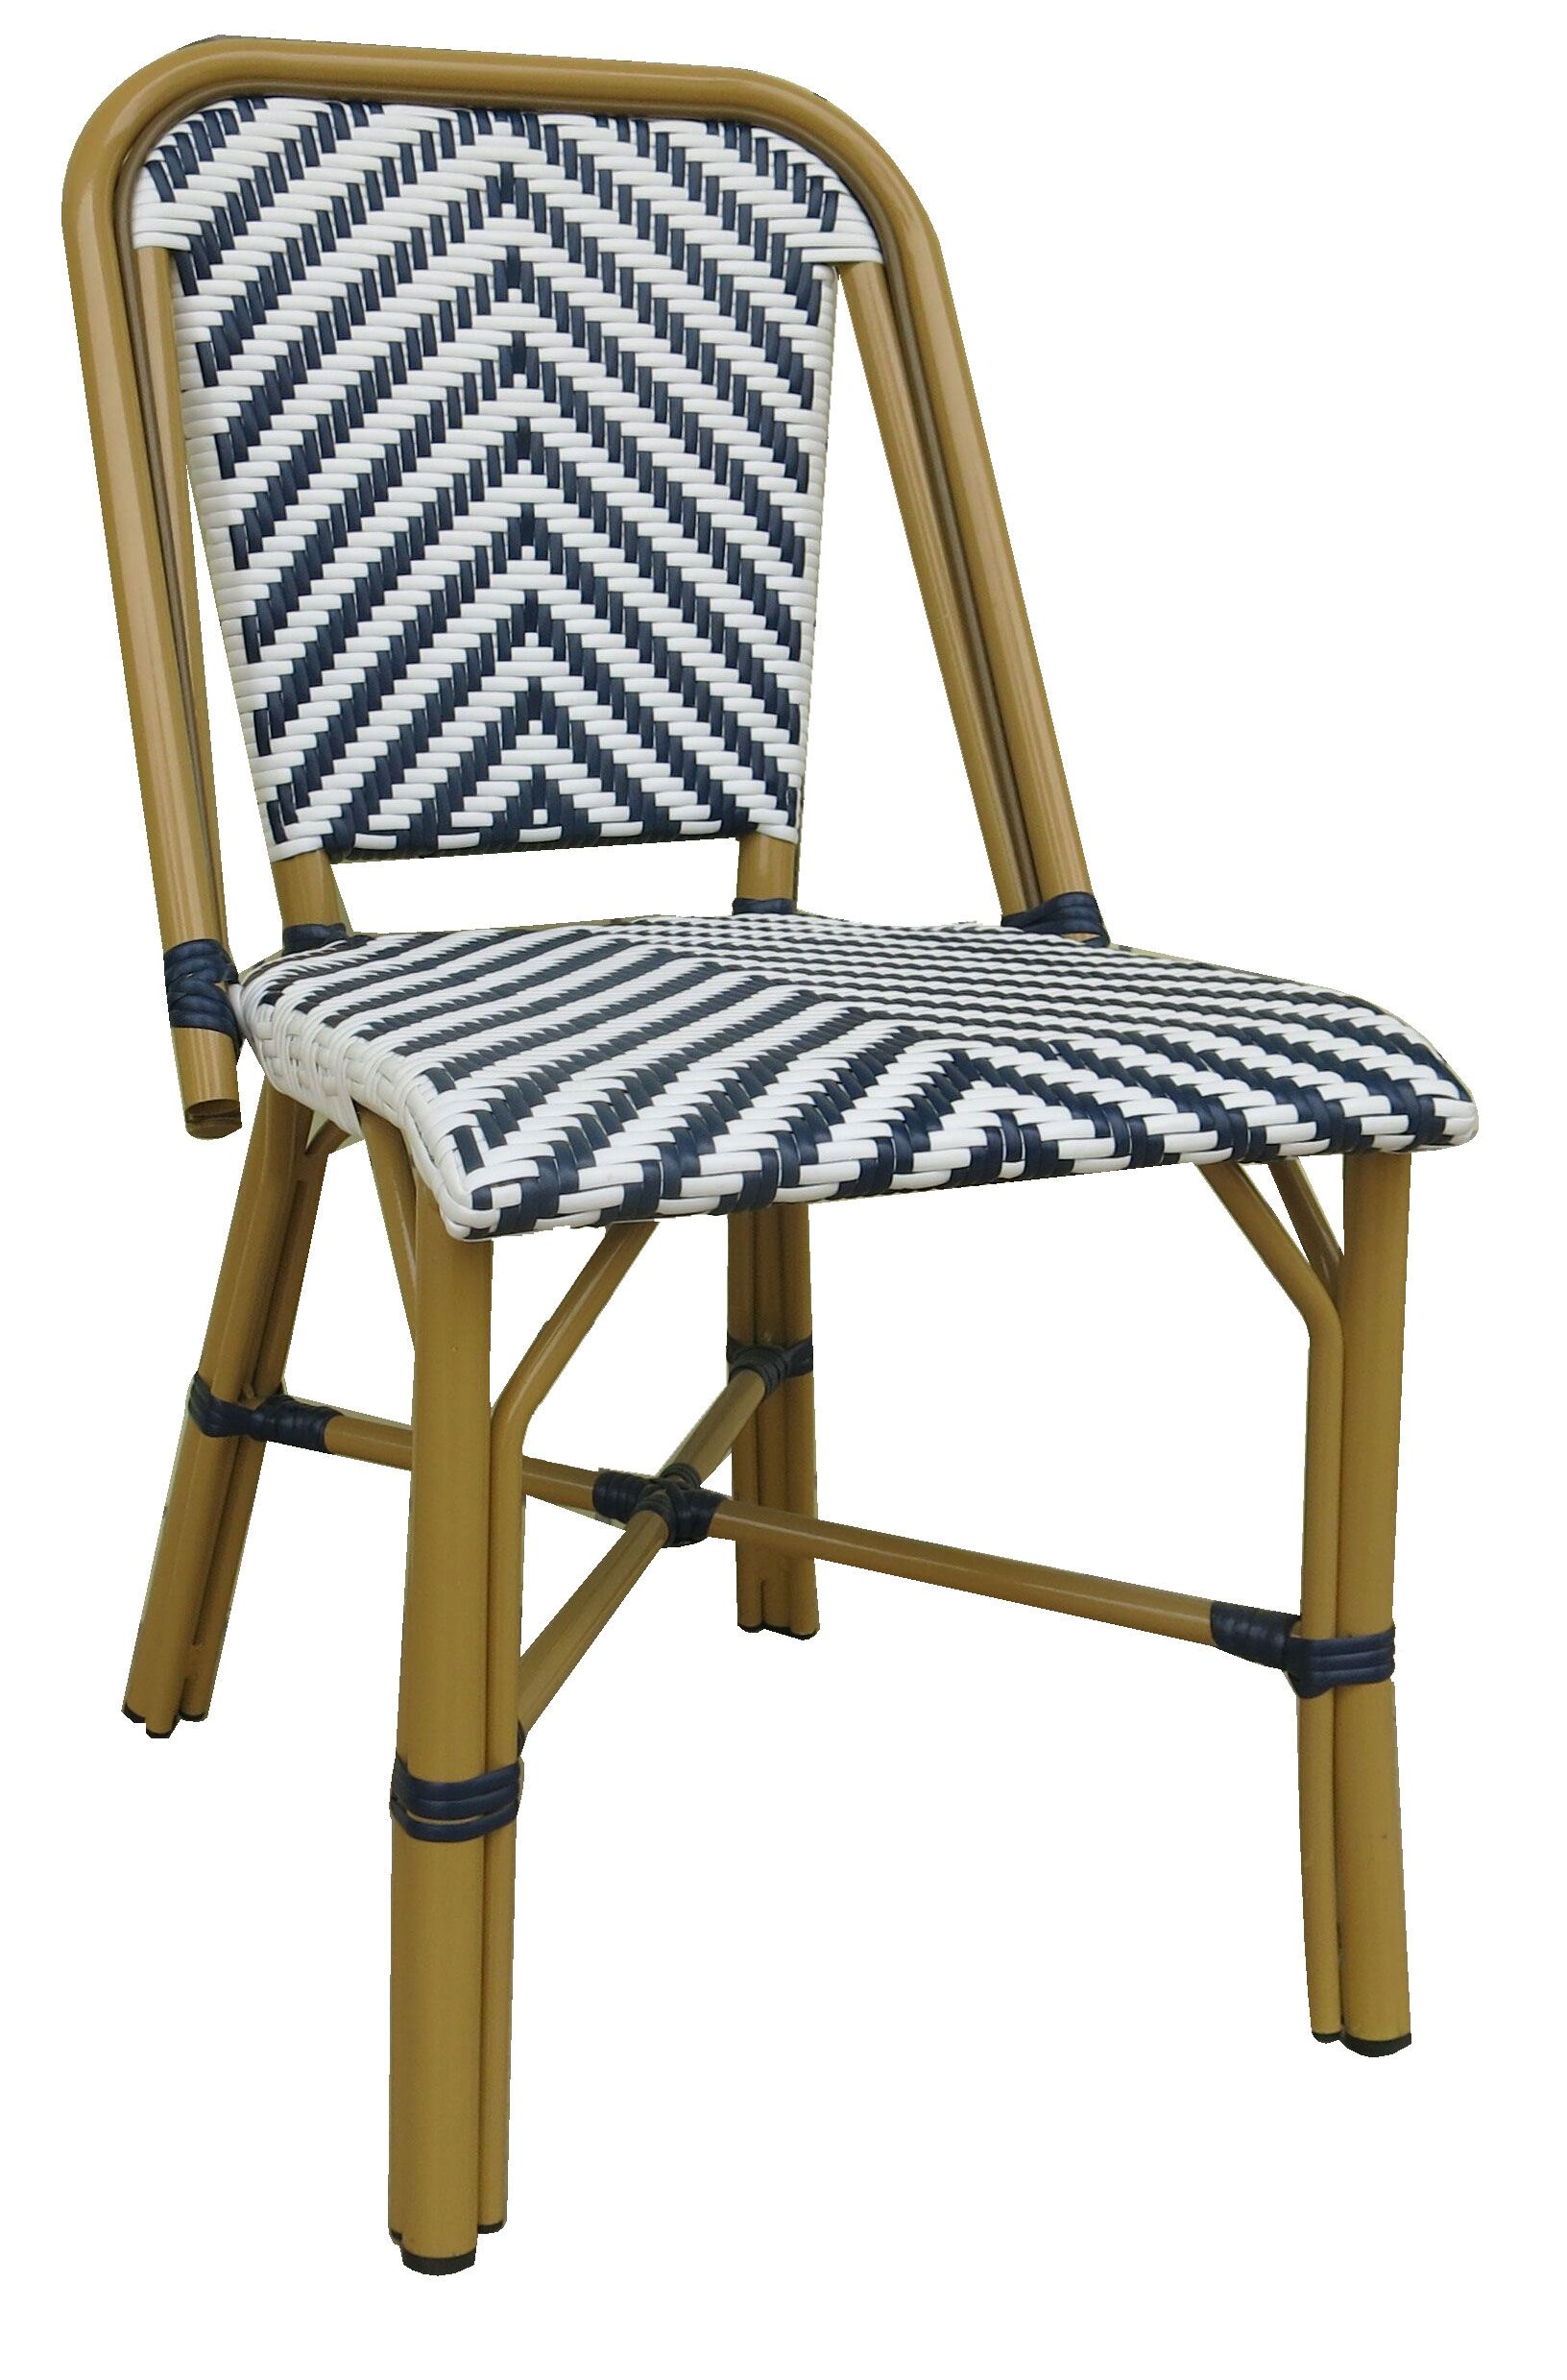 Patio Garden Patio Dining Chairs Clearance Outdoor Furniture